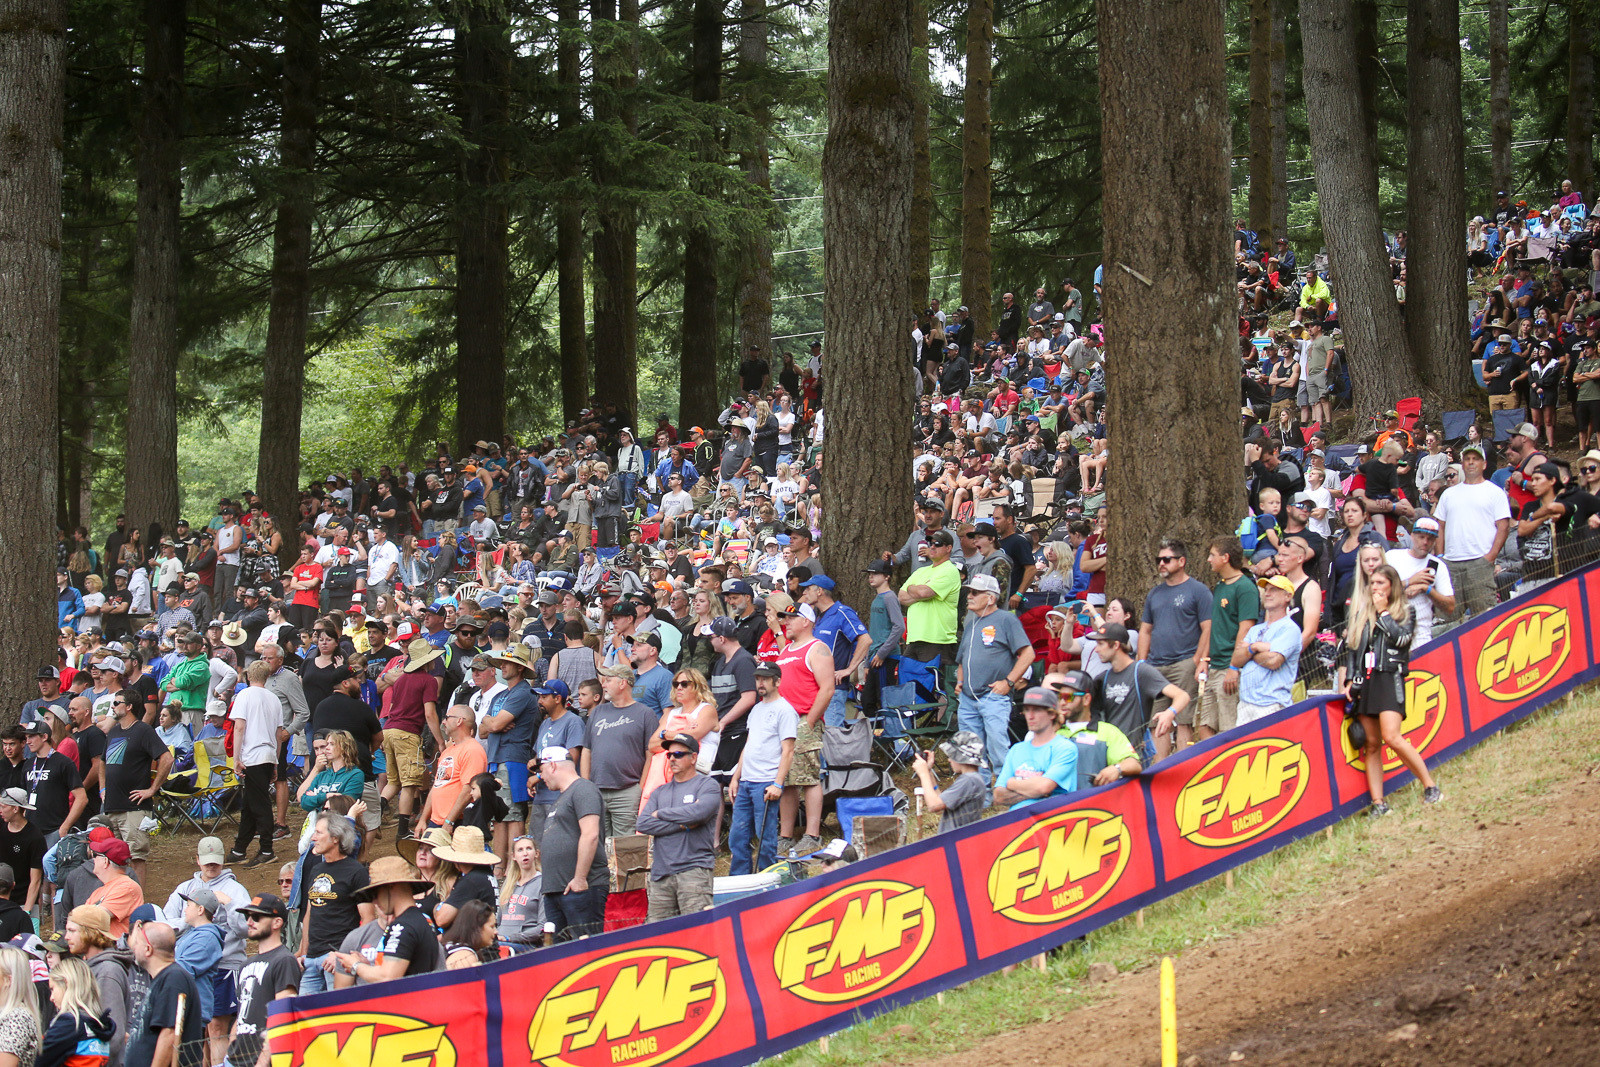 If there was a Bigfoot to be found at Washougal this year it was the crowd, which looked like one of the biggest that we've seen there.